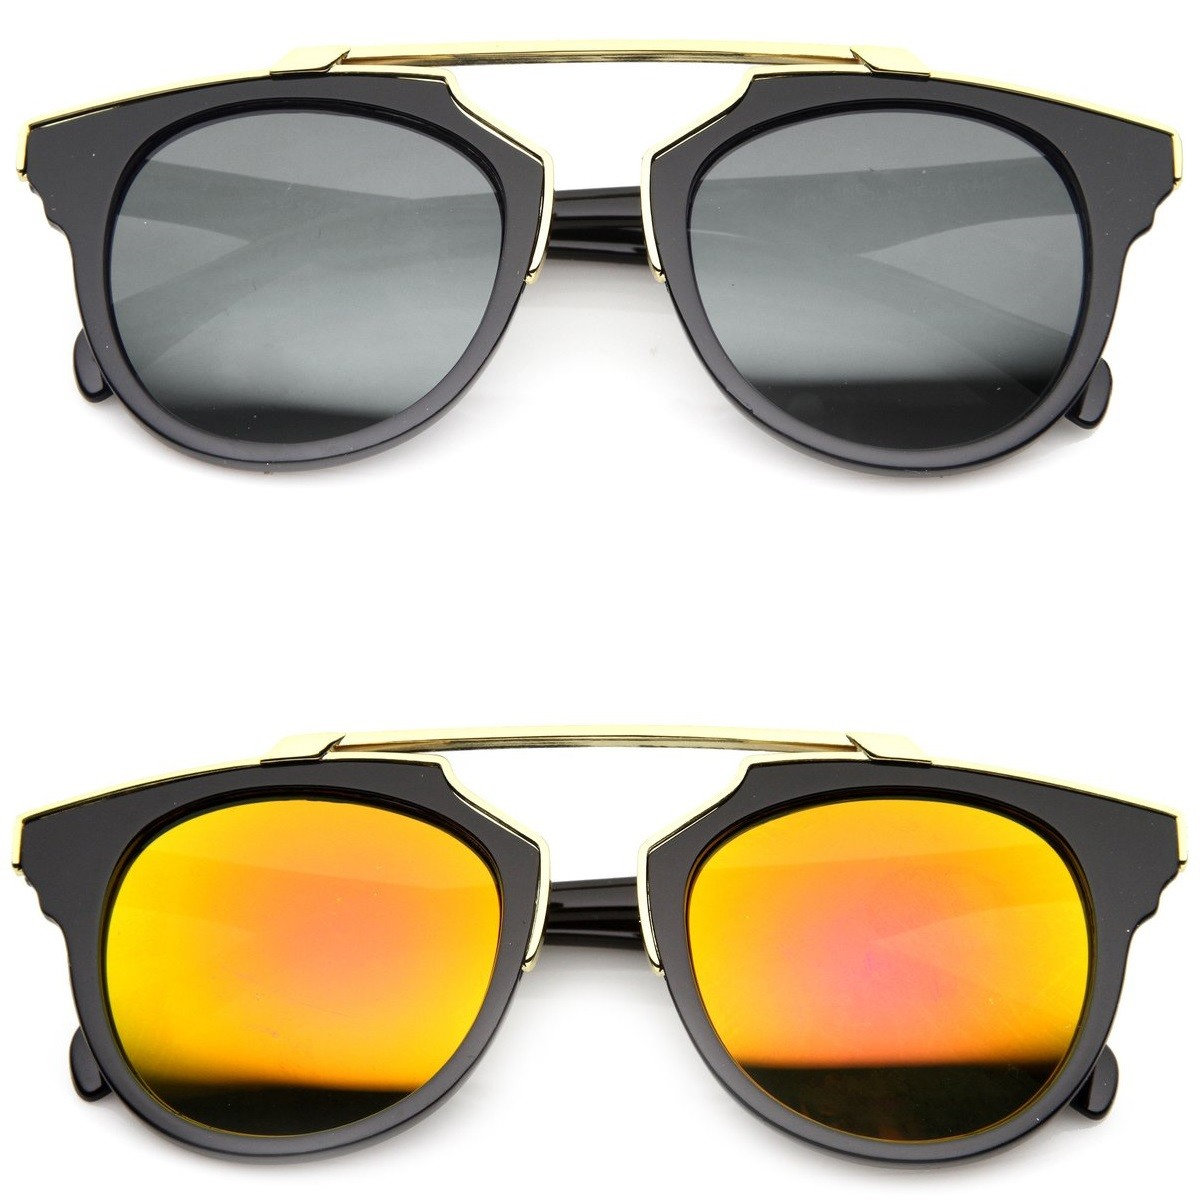 Sonnenbrille KISS® - Extravagant mod. ROCKSTEADY - herren, damen FASHION vintage celebrity